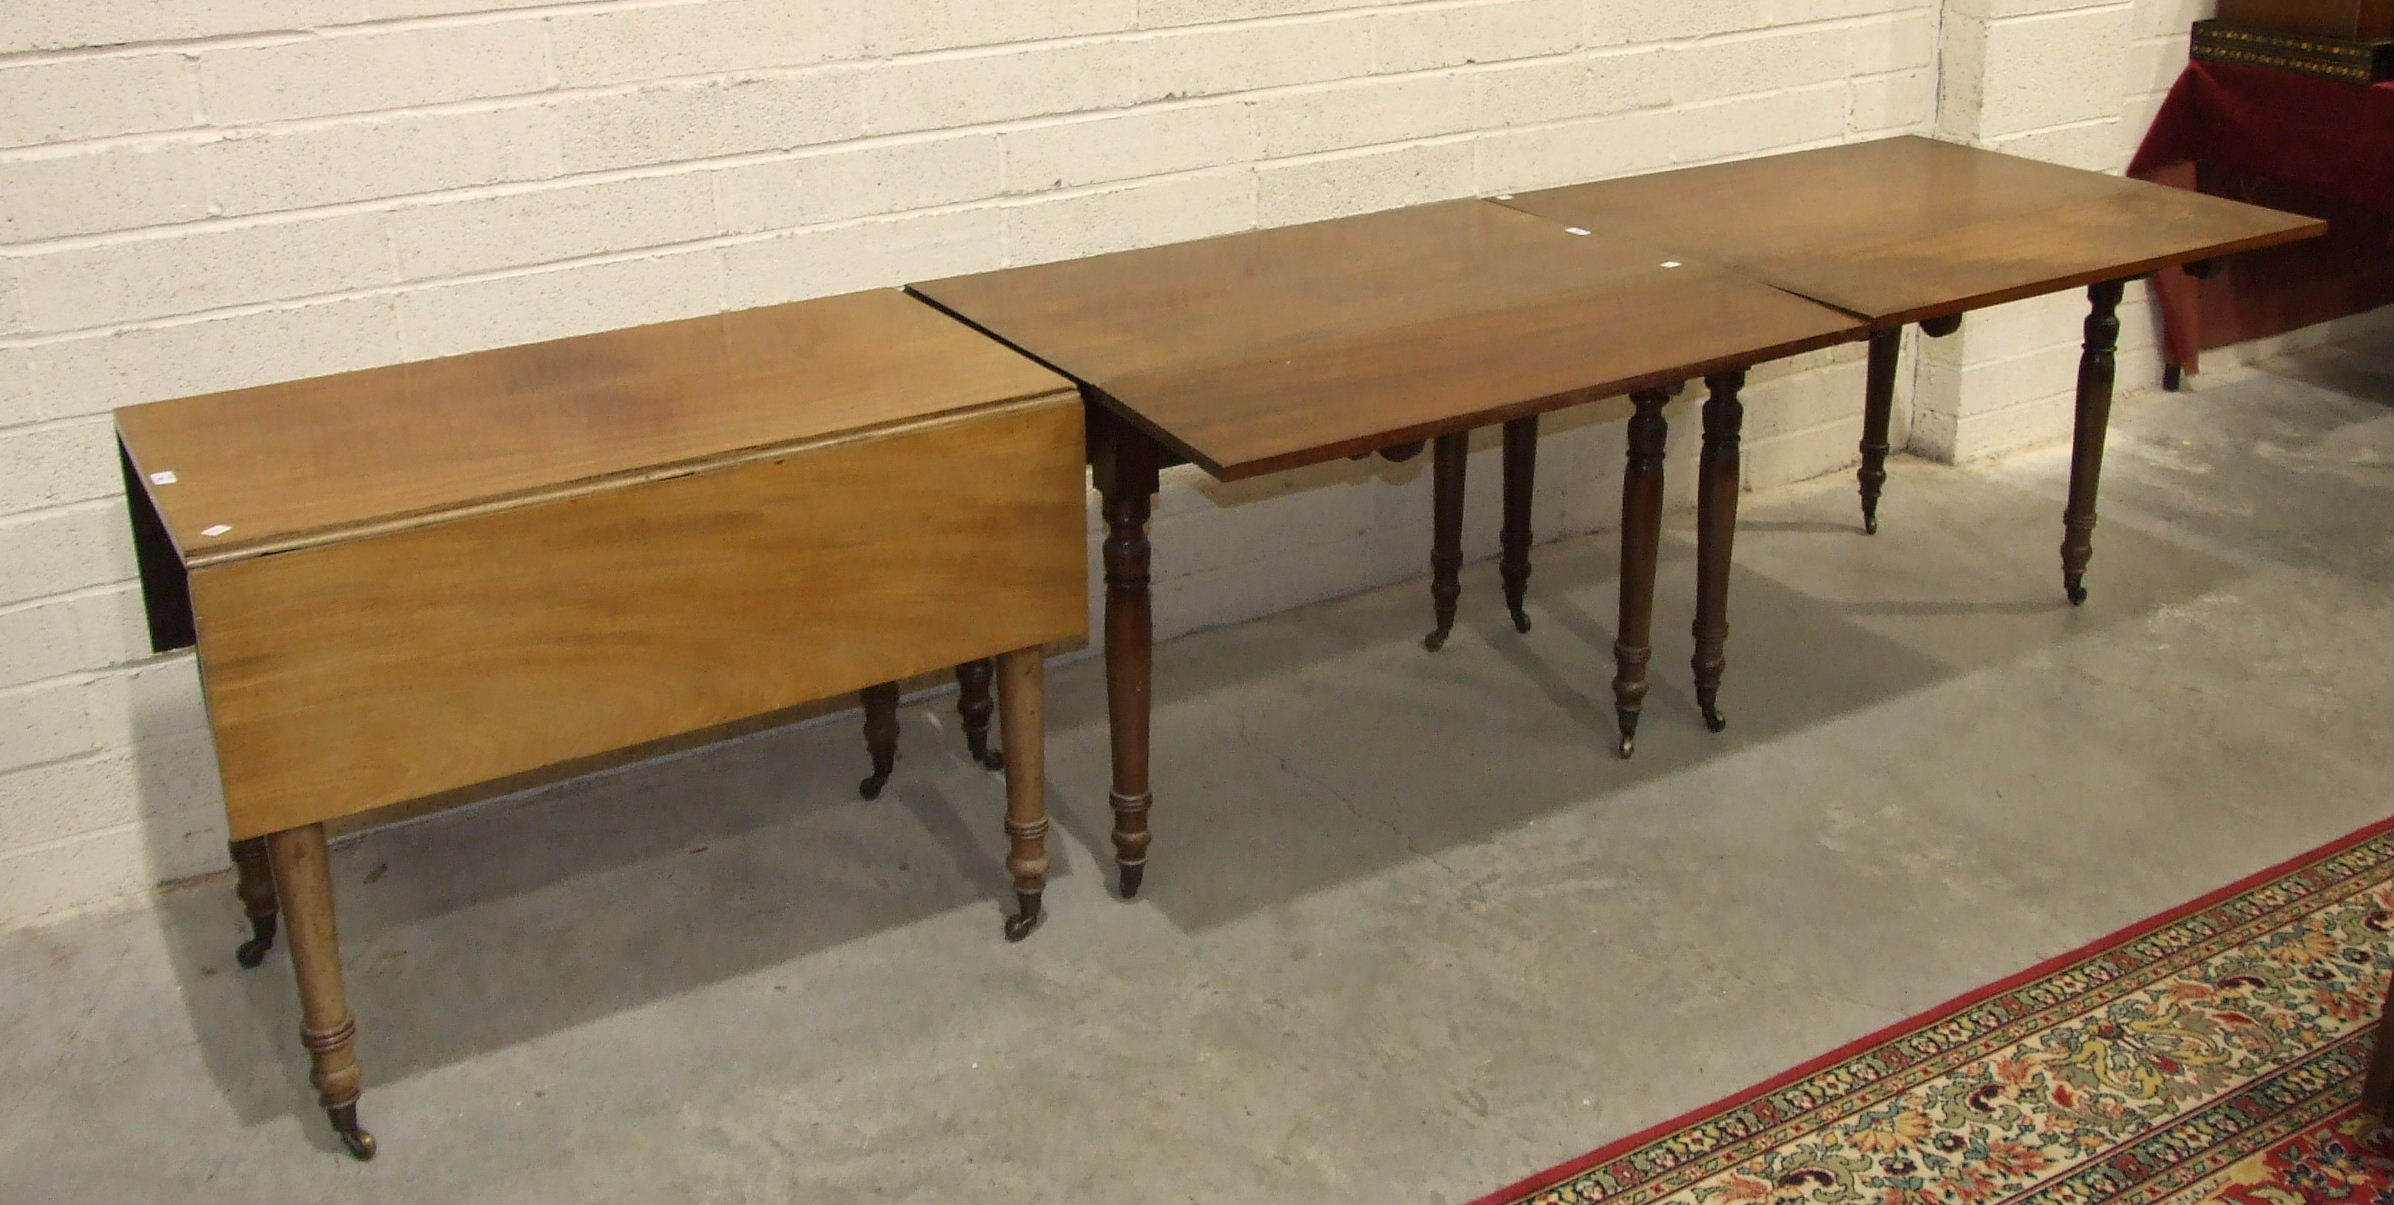 Lot 48 - Three 19th century mahogany drop-leaf tables on turned legs, forming a dining table, each section